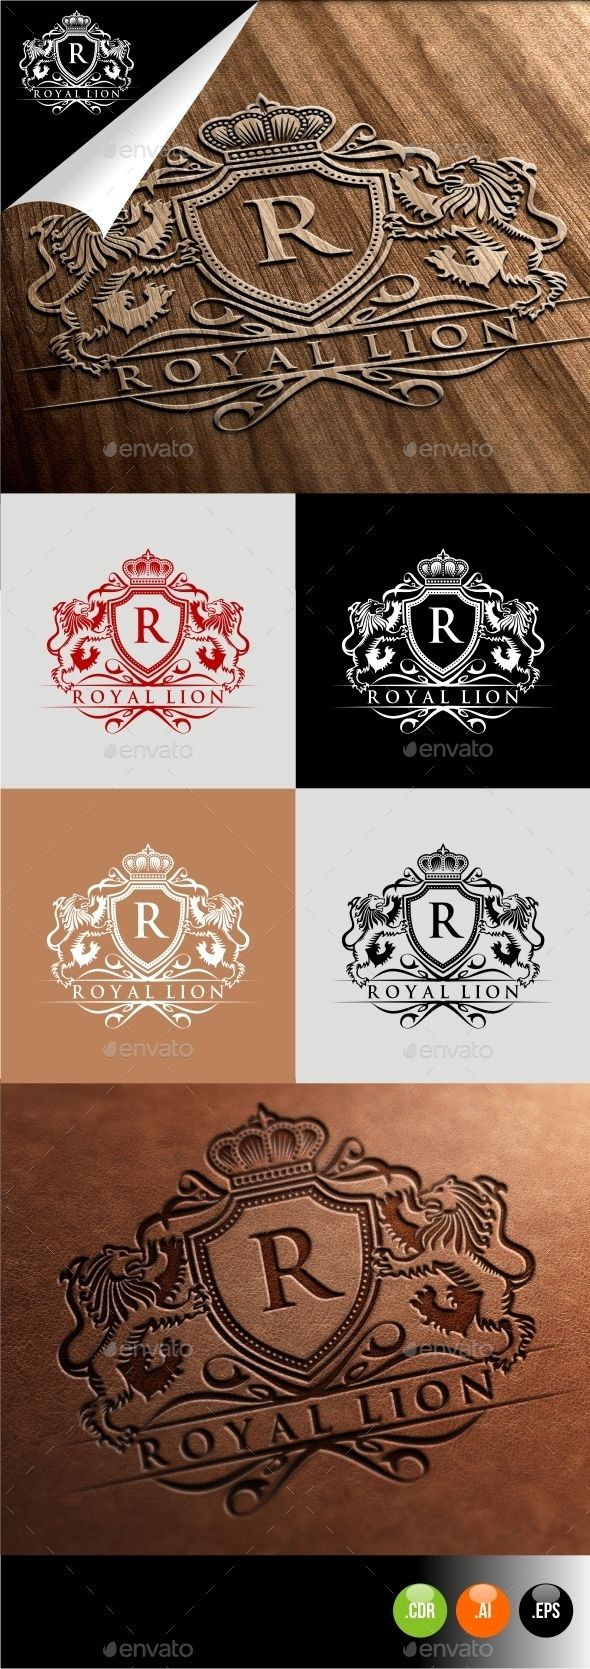 Royal Lion Template #design Download: http://graphicriver.net/item/royal-lion/10262409?ref=ksioks